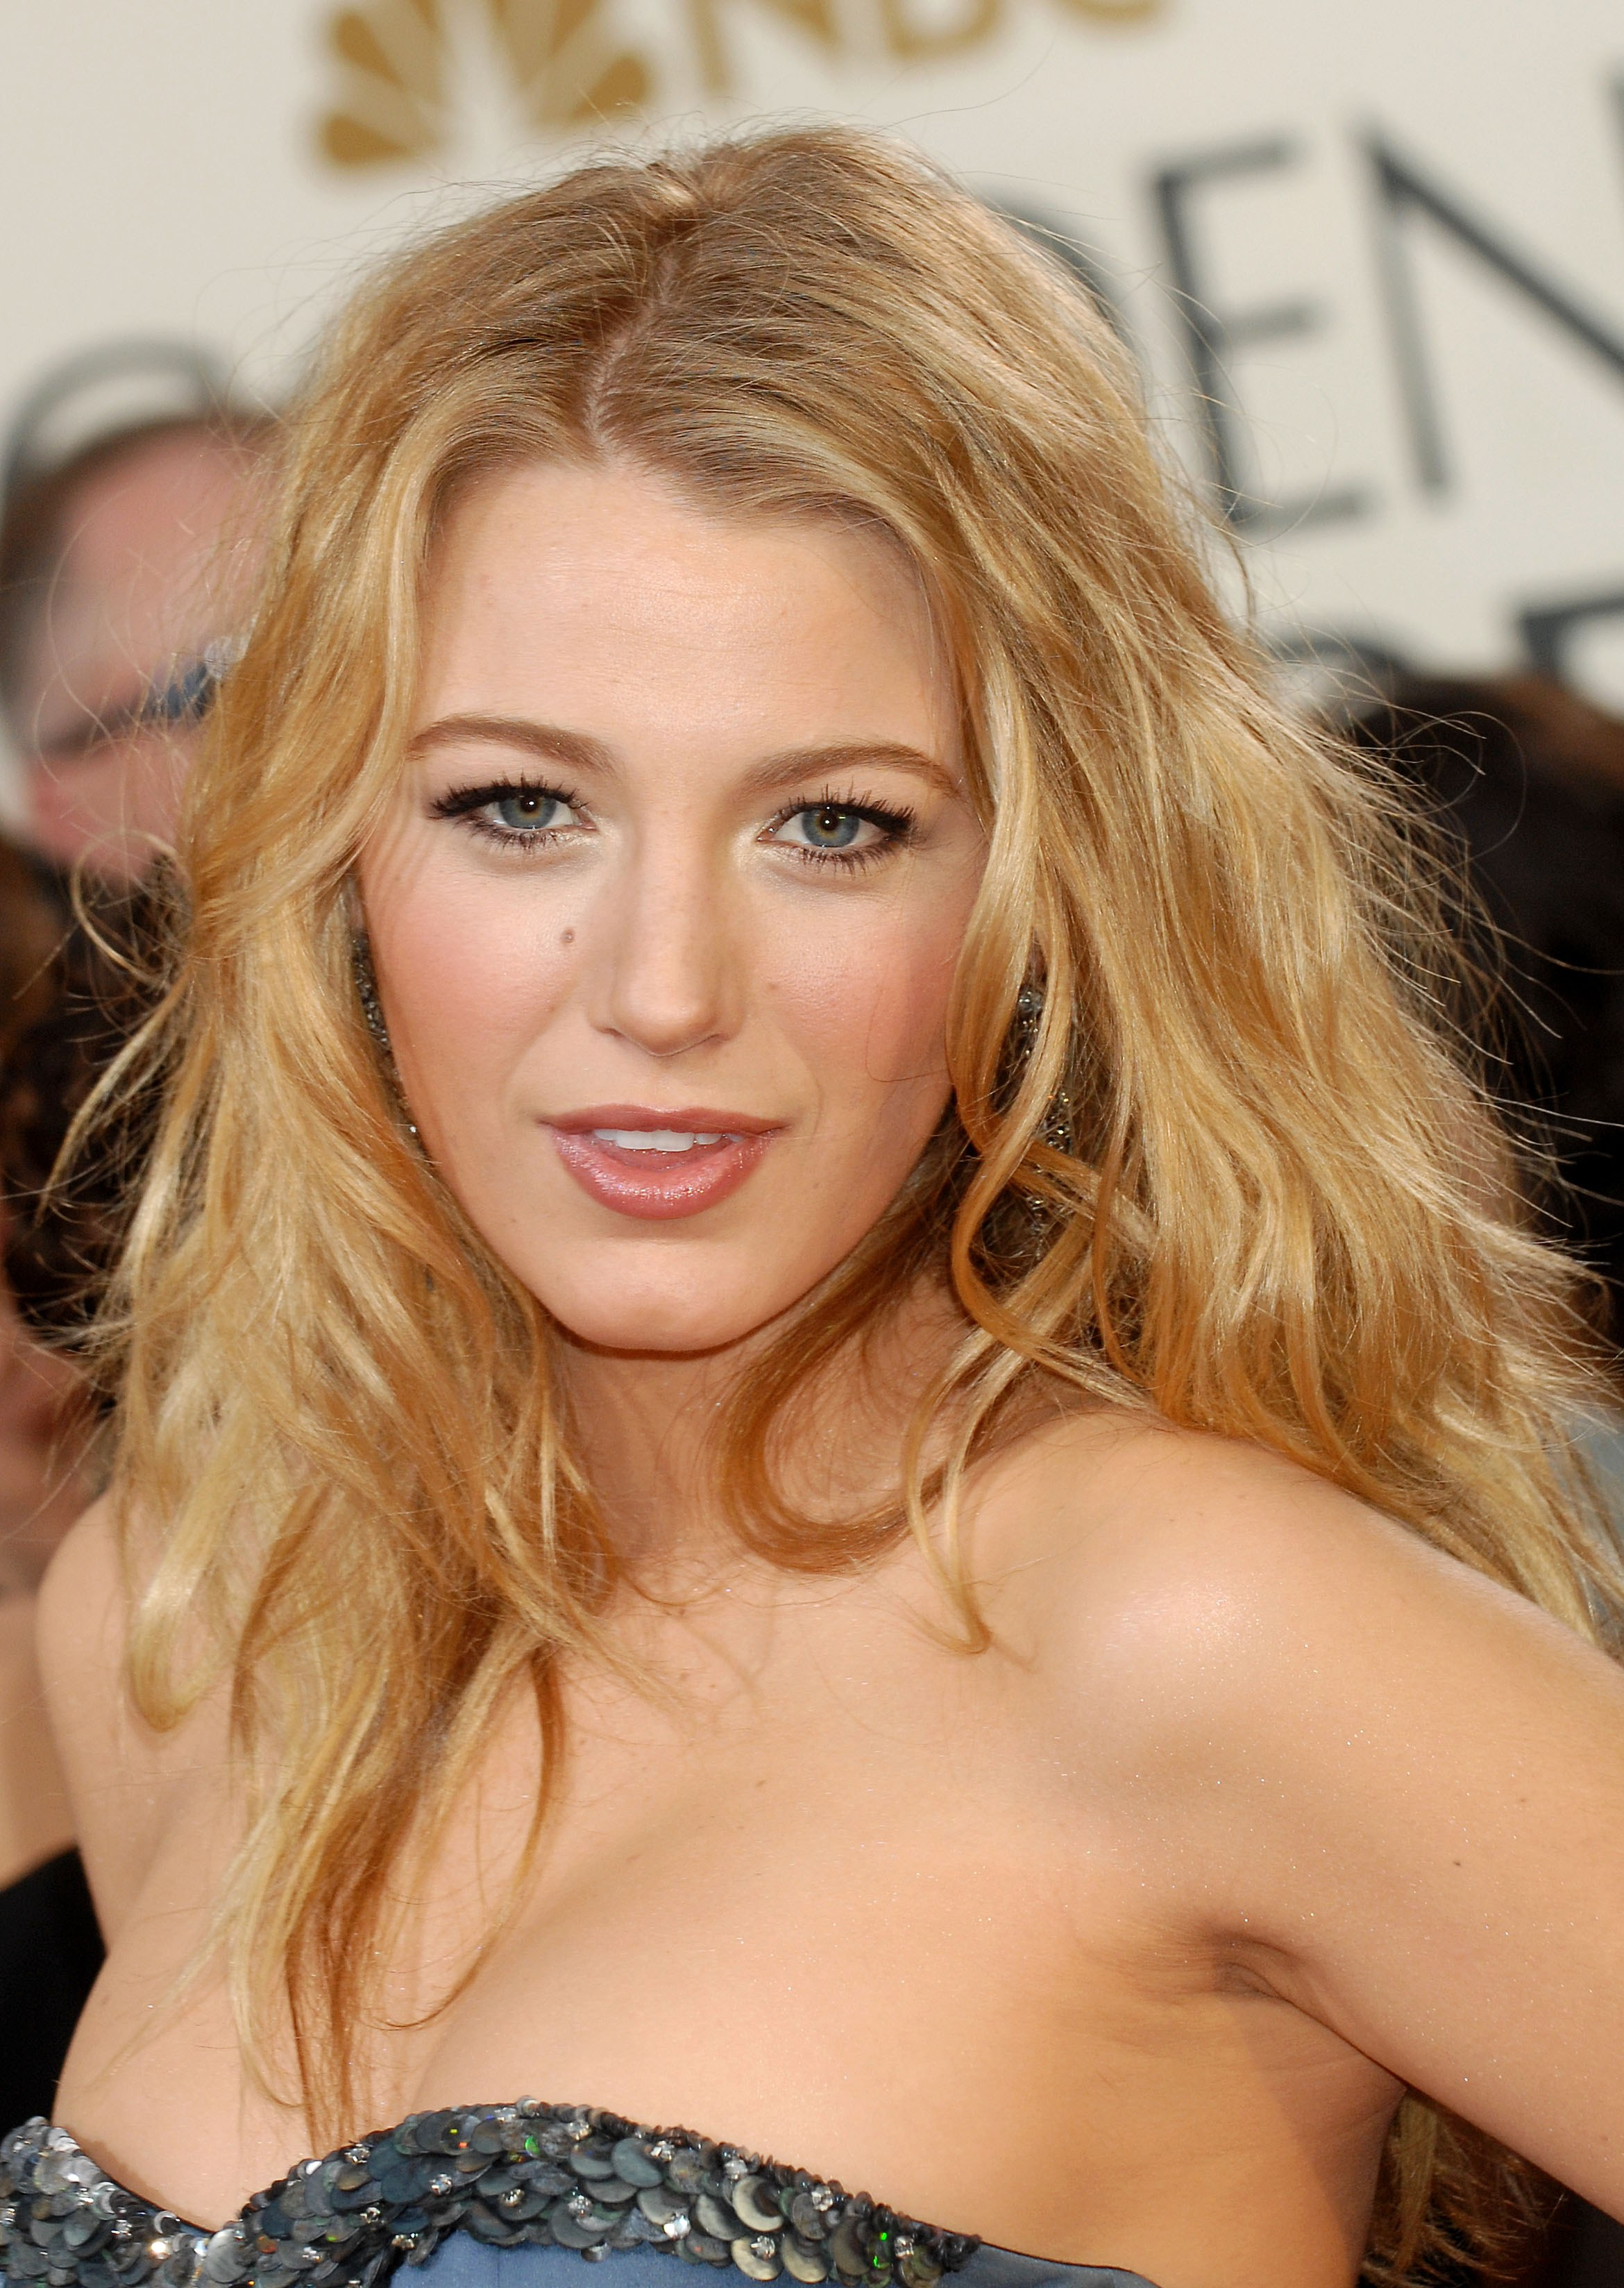 27800_Blake_Lively___66th_Annual_Golden_Globe_Awards_CU_ISA_01_122_134lo.jpg